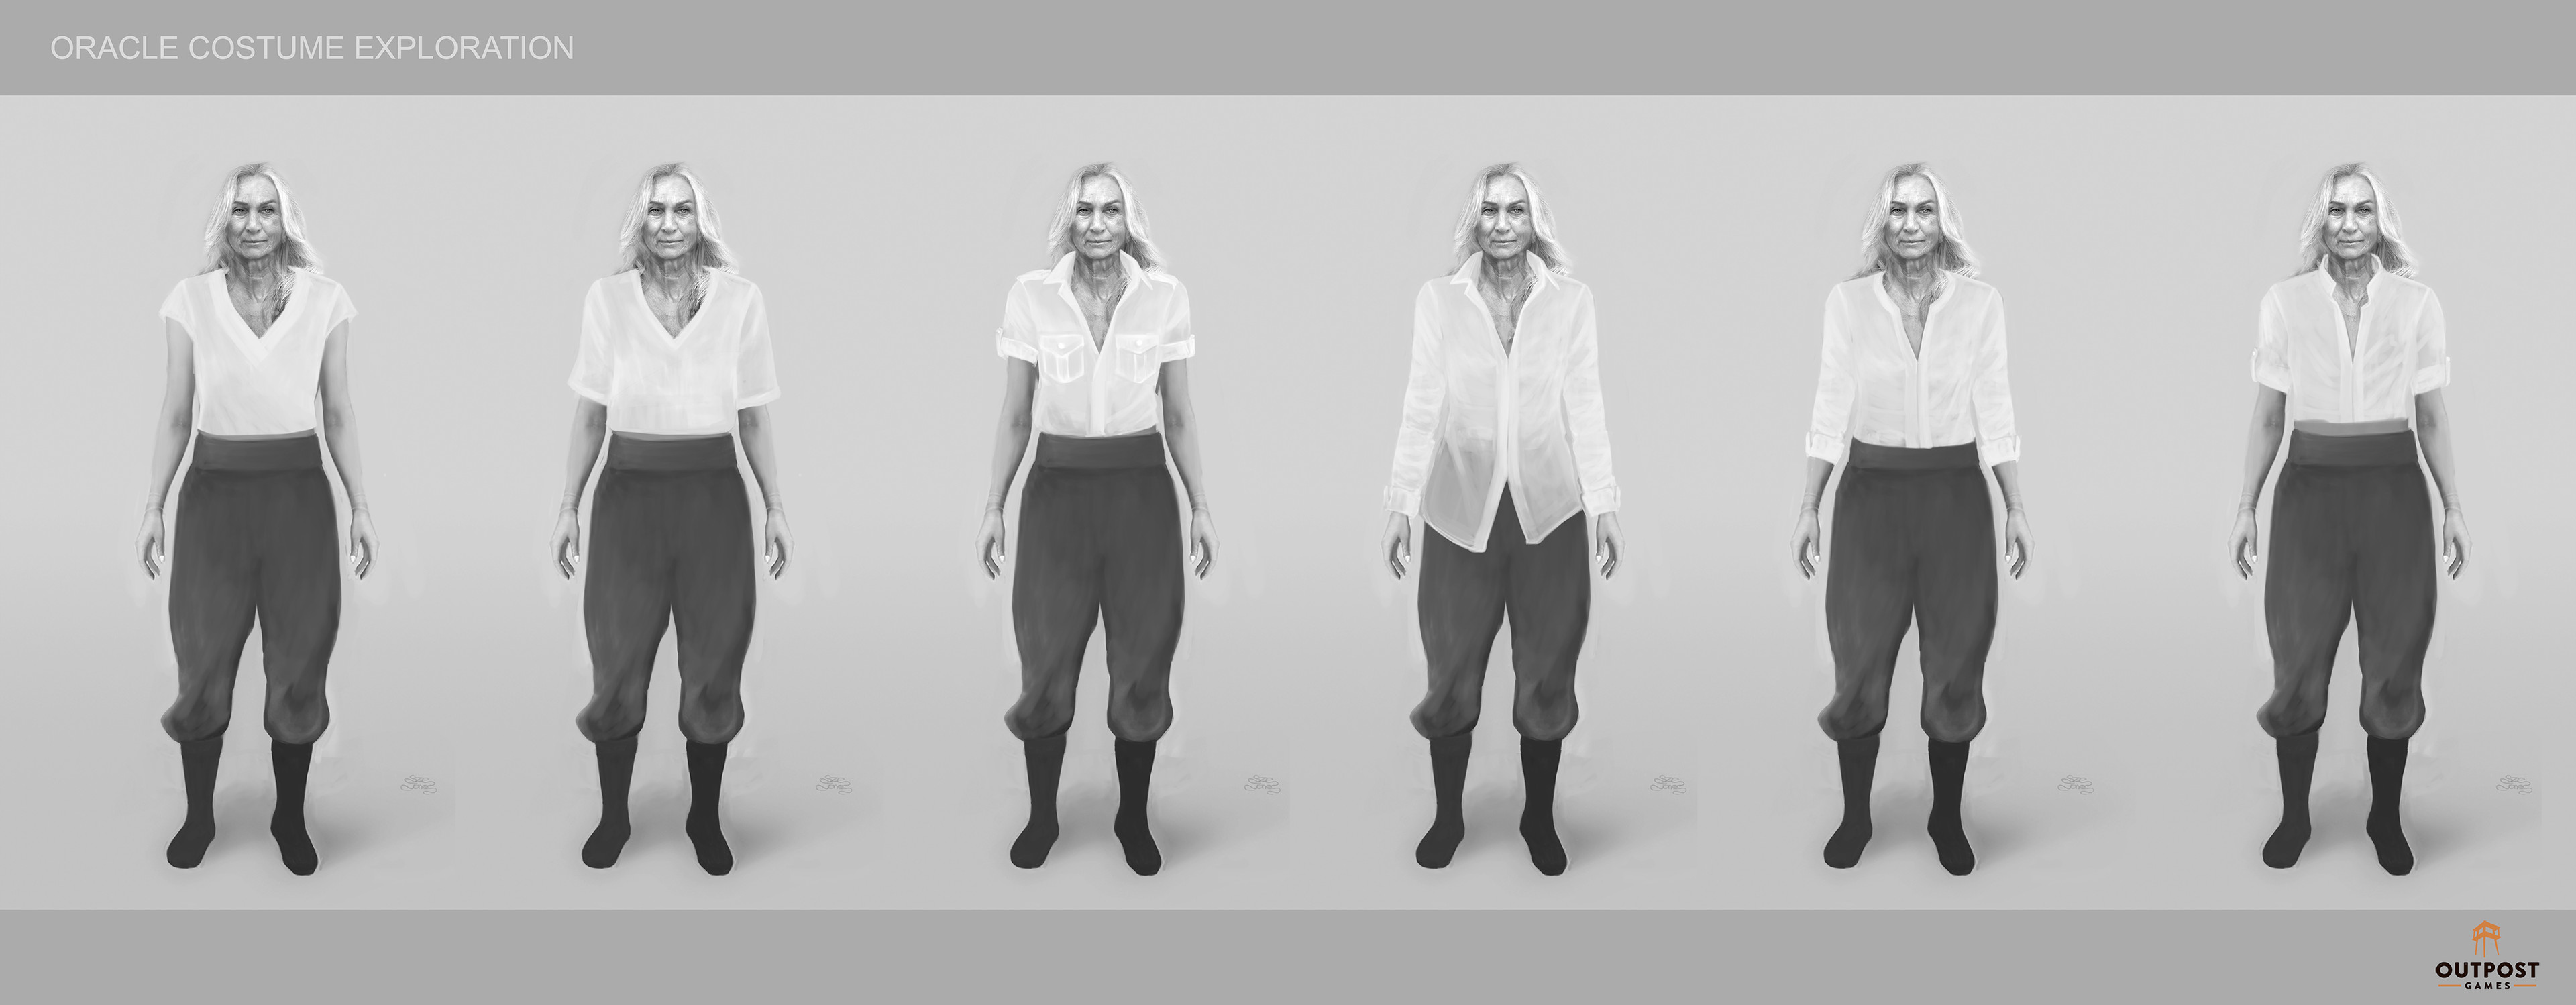 Oracle - Costume Part System Design (Shirts)